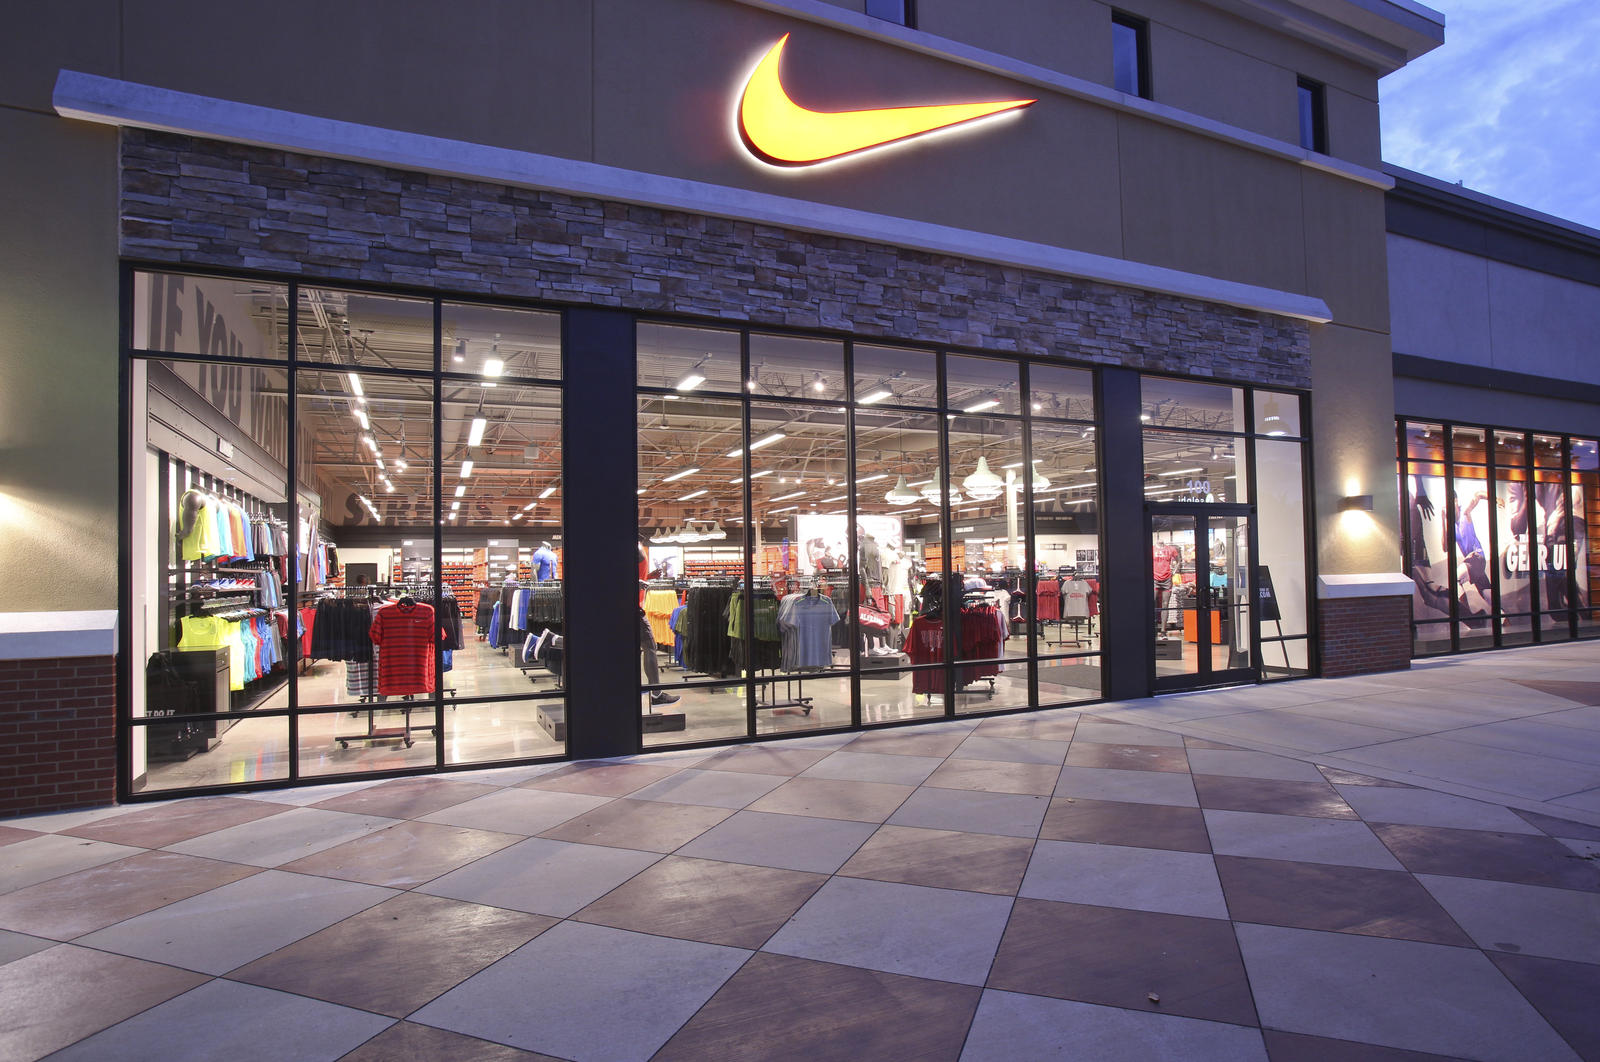 Nike Factory Store. This Nike Factory Store features 14, square feet of fabulous Nike shopping with store front parking. Follow deals for weekly offers. Discounts: Military, LBV Resort Village & Spa Employee, Disney Employee. Subject to Change. It is located at South Apopka Vineland Road also known as State Road